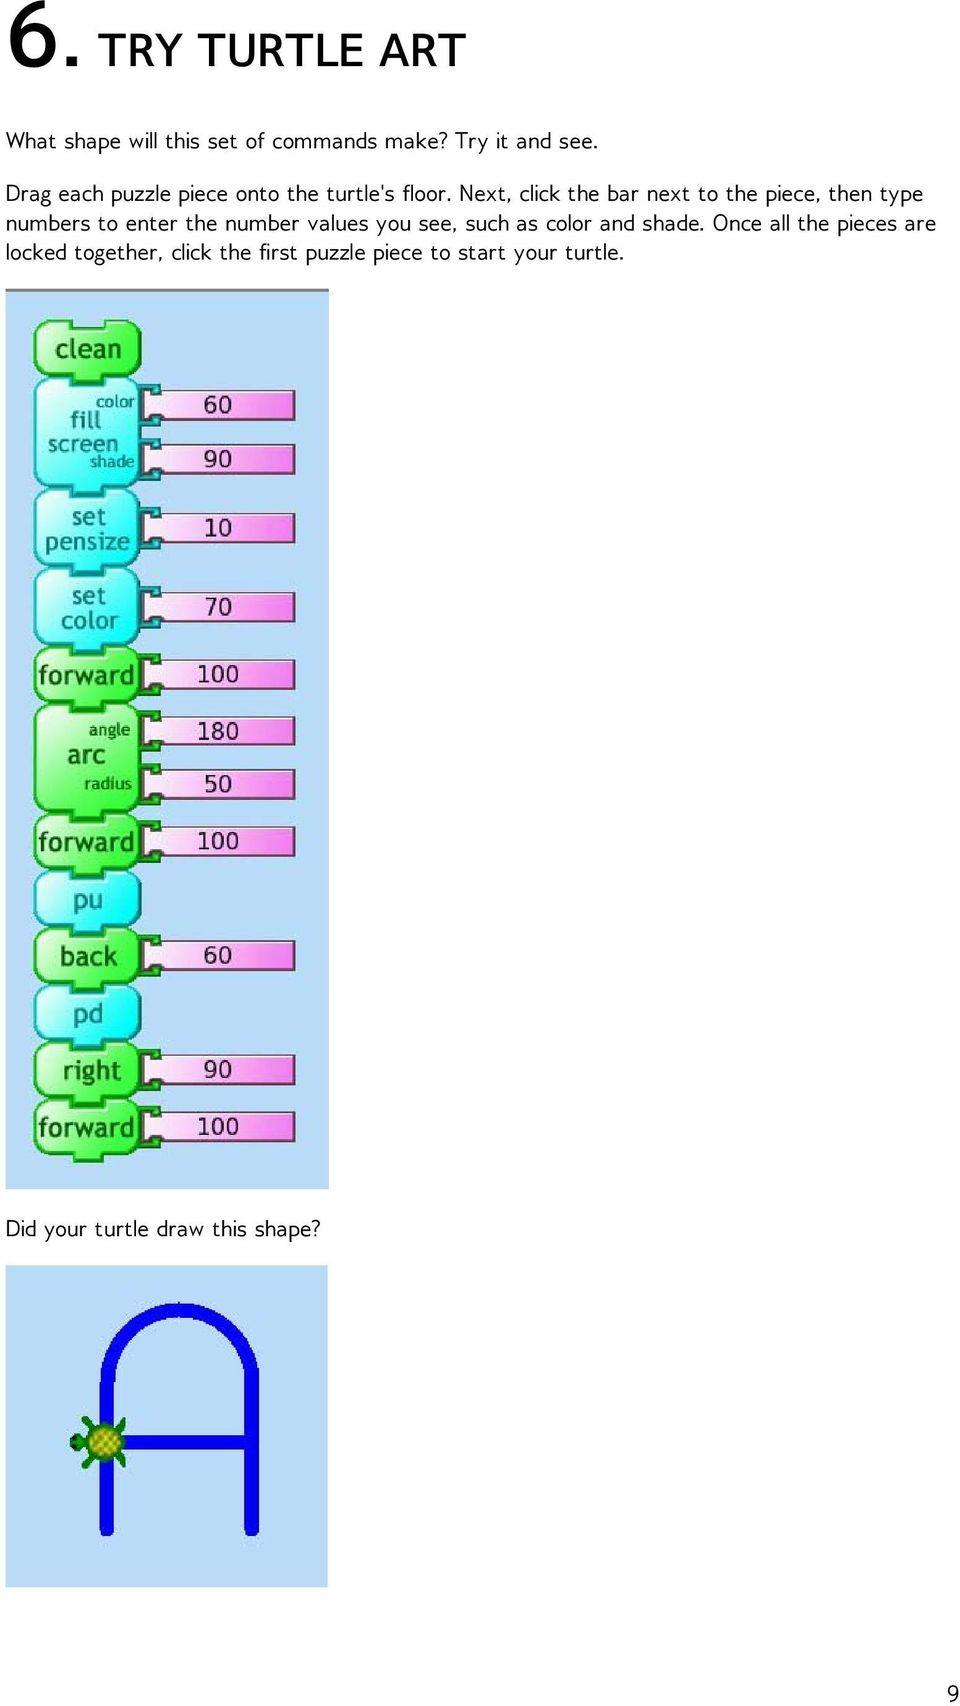 Next, click the bar next to the piece, then type numbers to enter the number values you see,